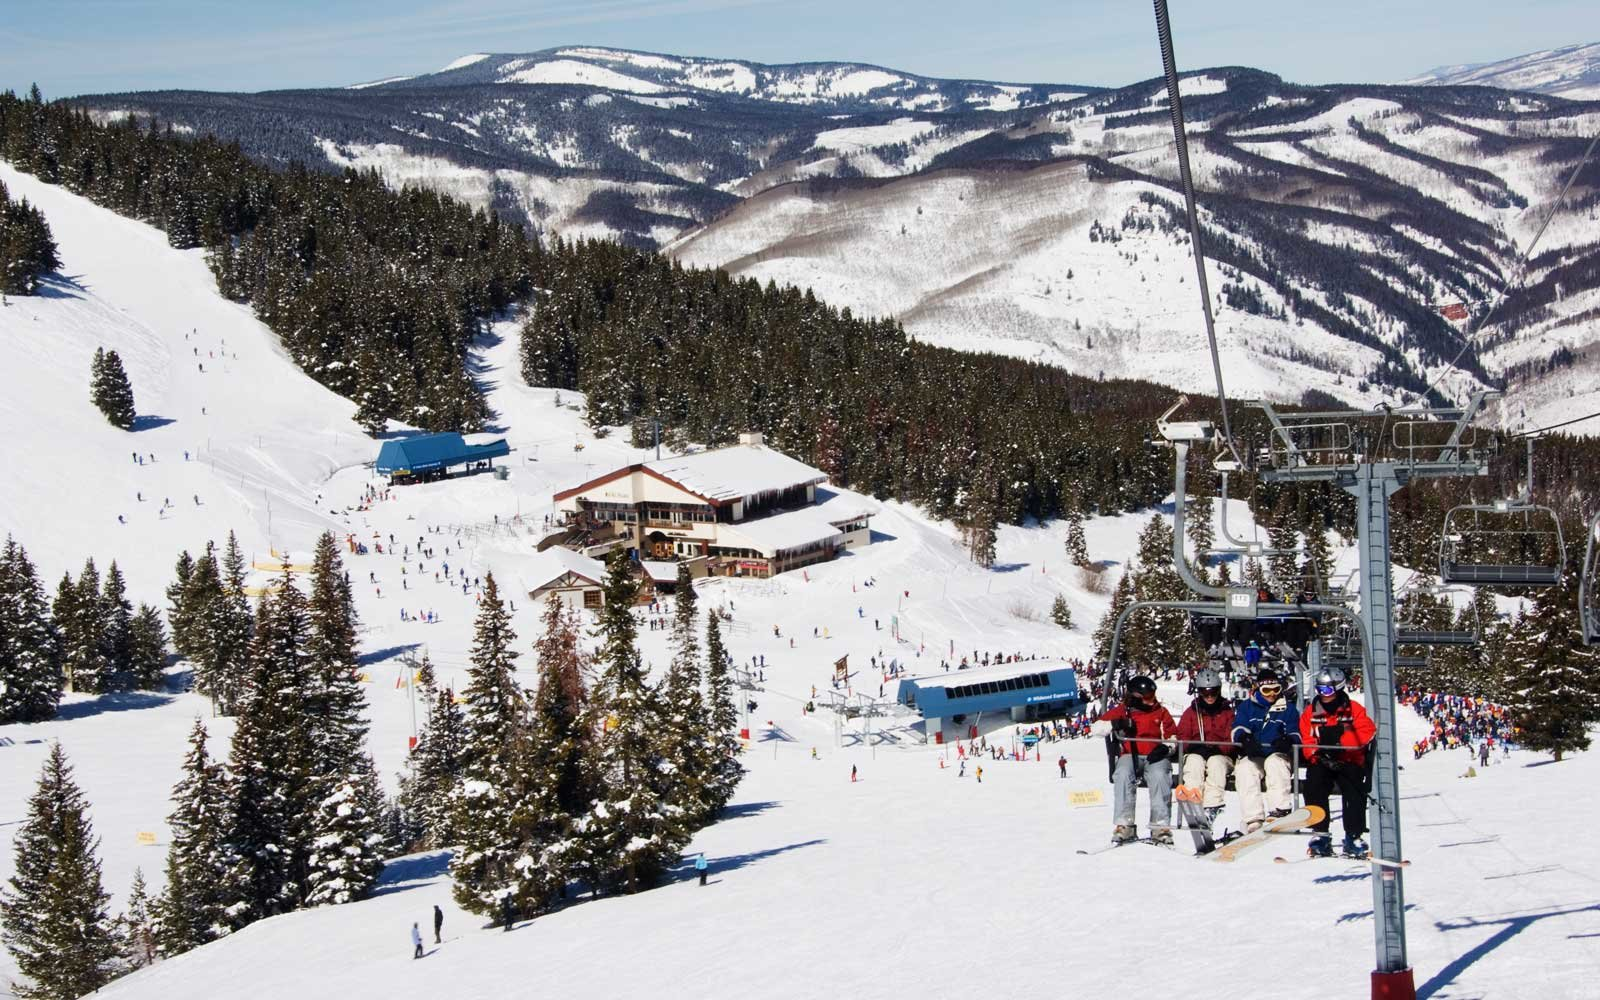 Skiers being carried on a chair lift to the back bowls of Vail ski resort, Vail, Colorado